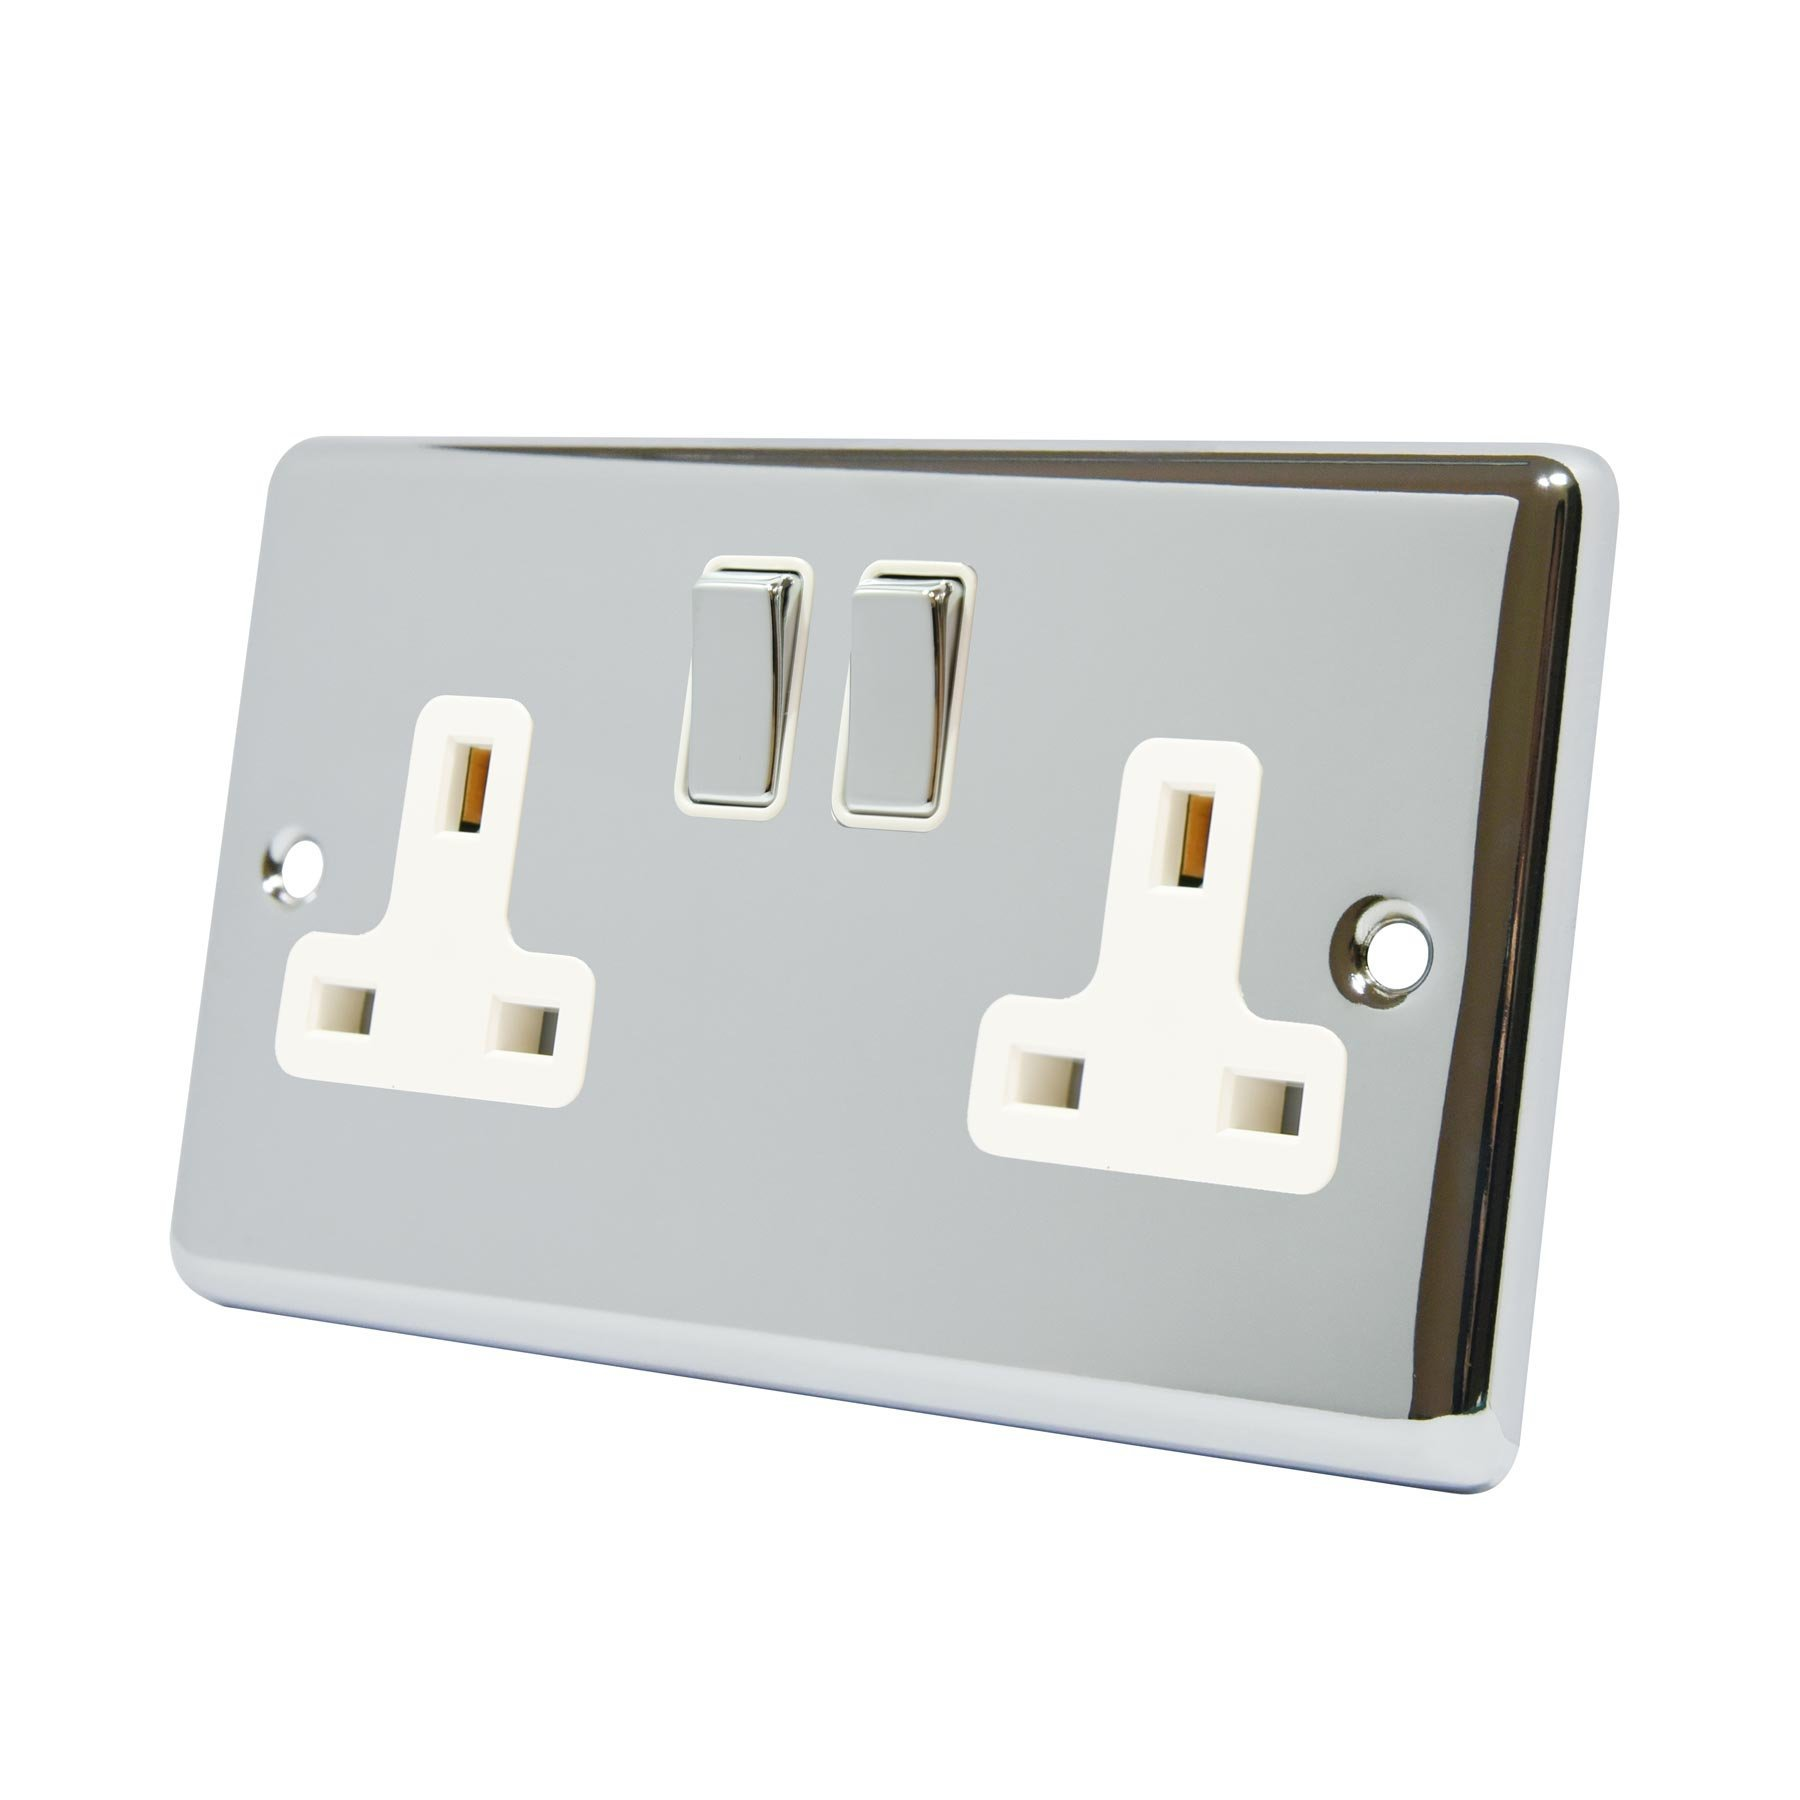 Confident Ip66 Waterproof Wall Outlet Wall Mounted Plug Adapter Socket With Switch Hot Air Conditioning Appliance Parts